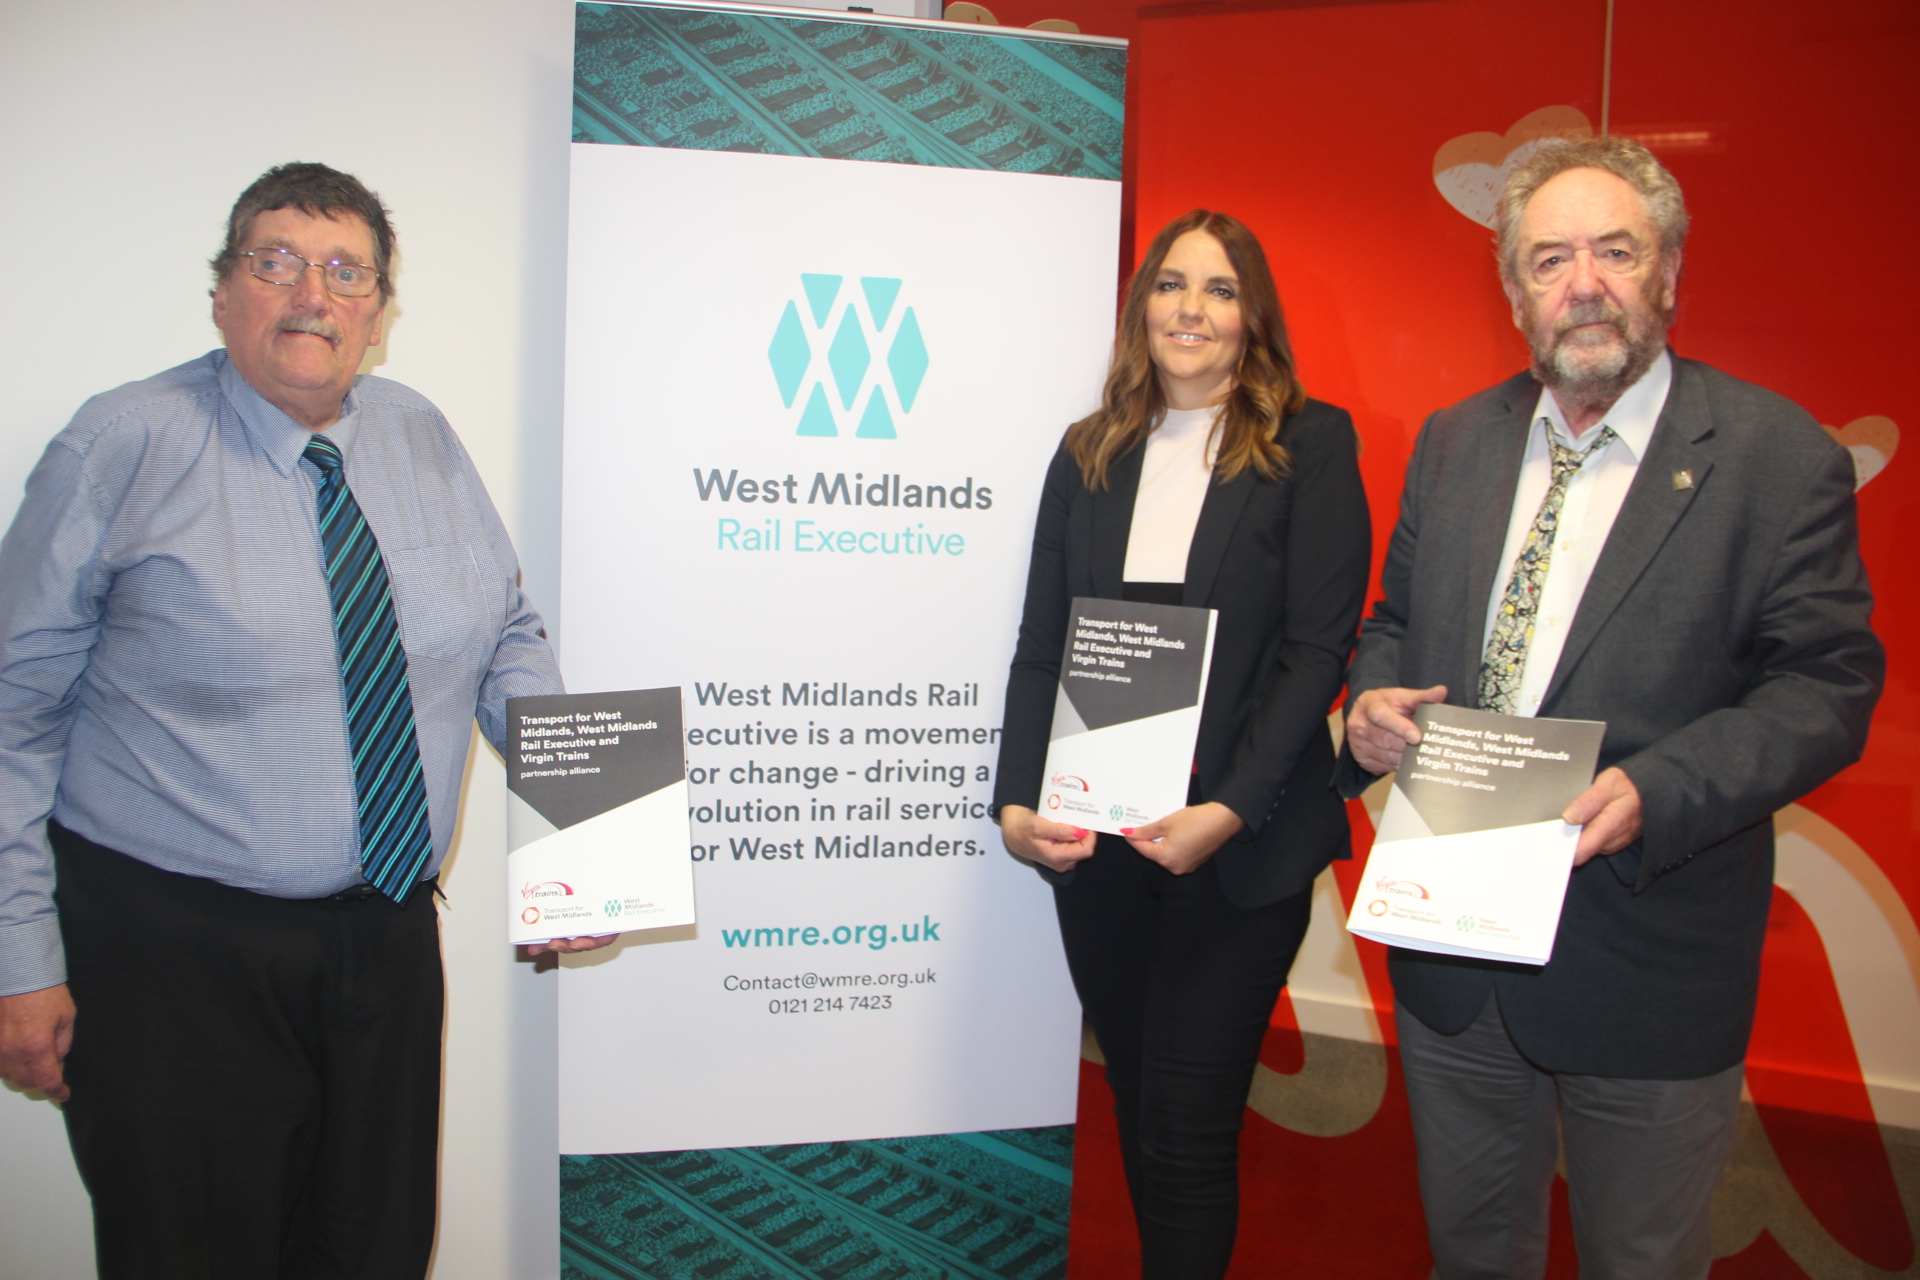 Latest West Midlands public transport partnership agreed